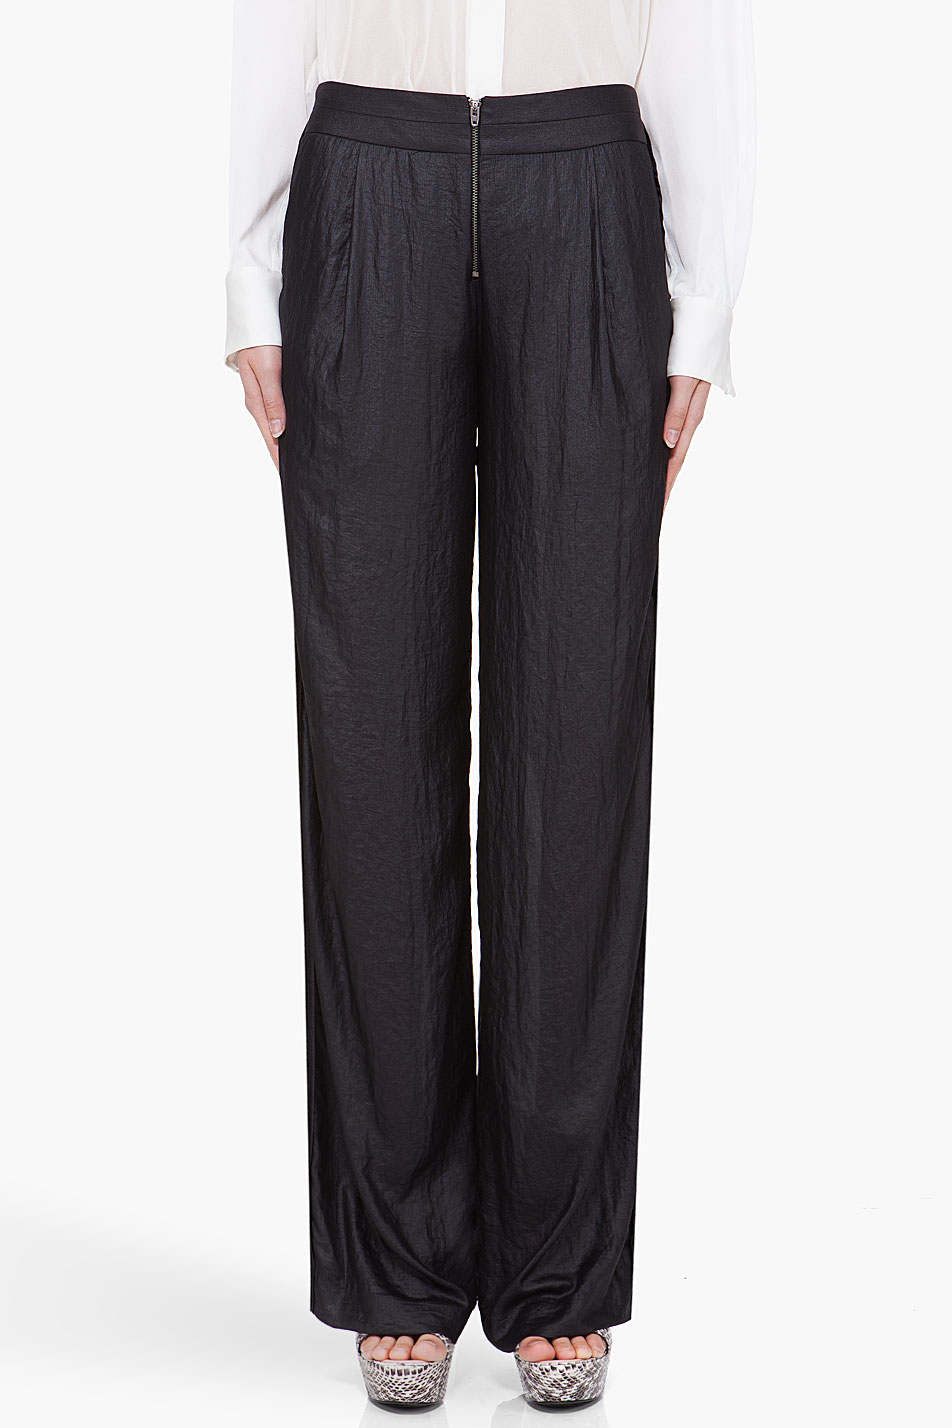 under.ligne black wide leg pants